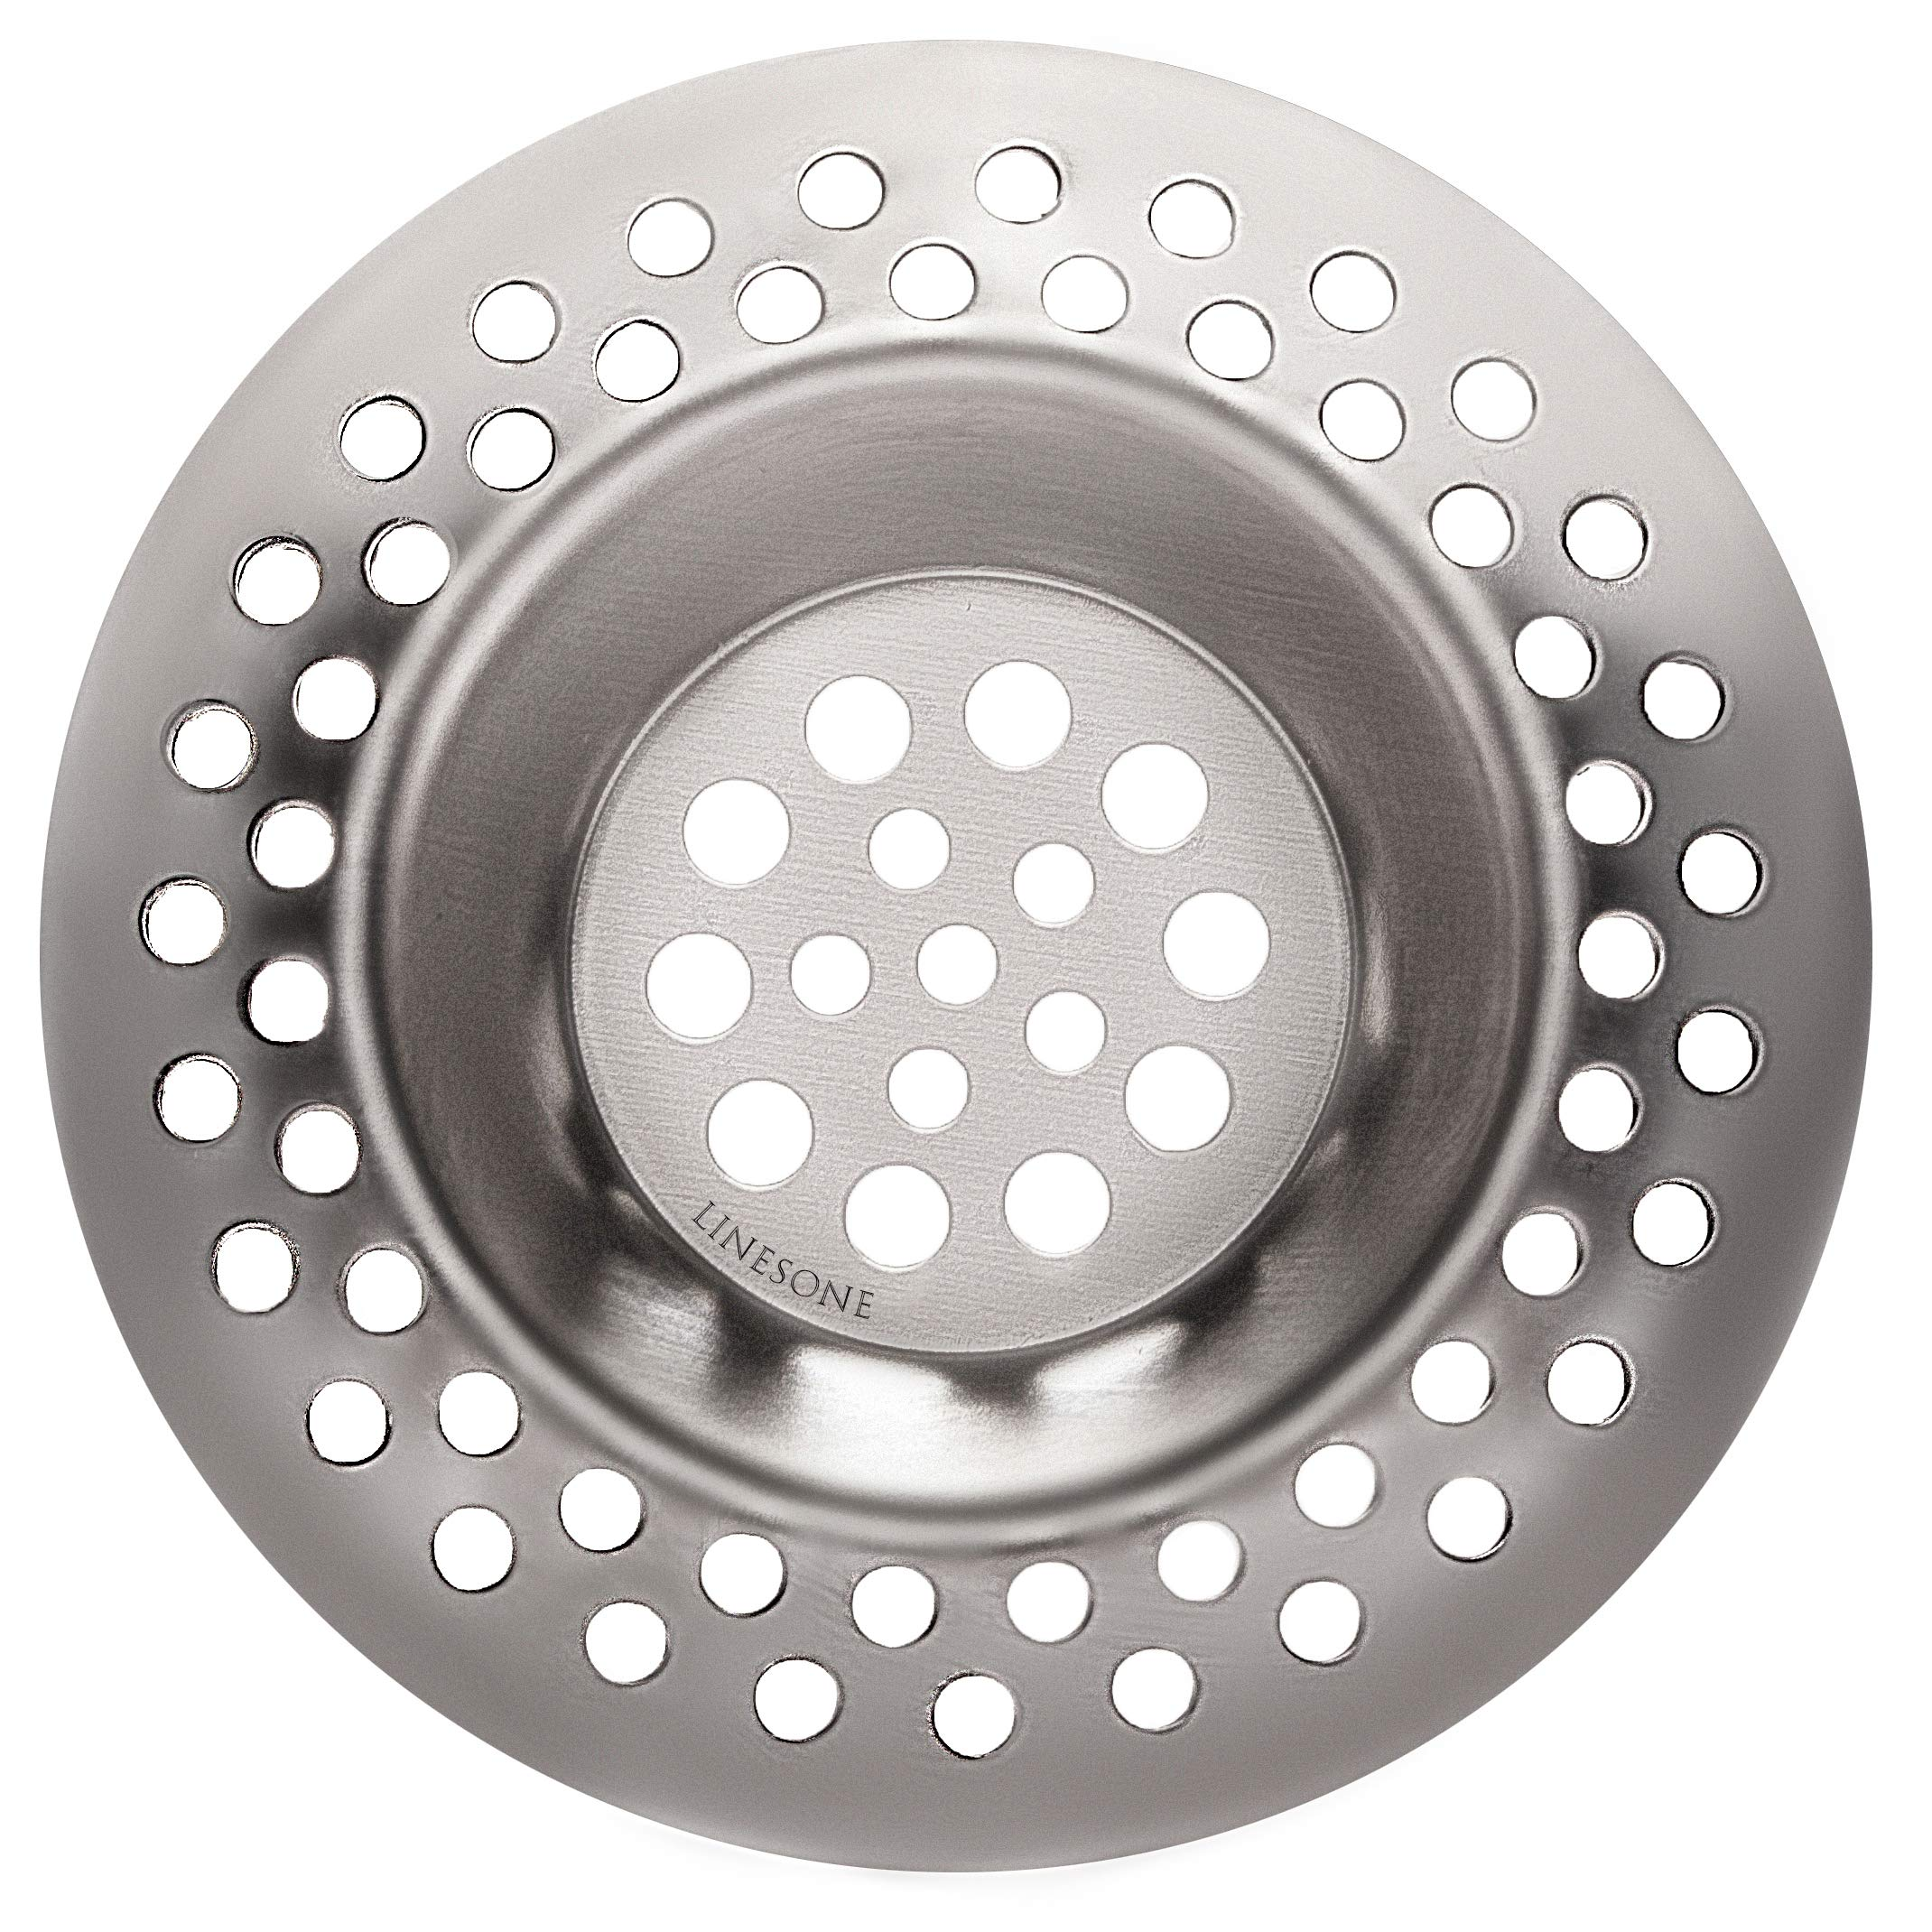 Lines One Portable Steel Hair Catcher, Standard Strainer Drain Protector from Clog for Bathroom,